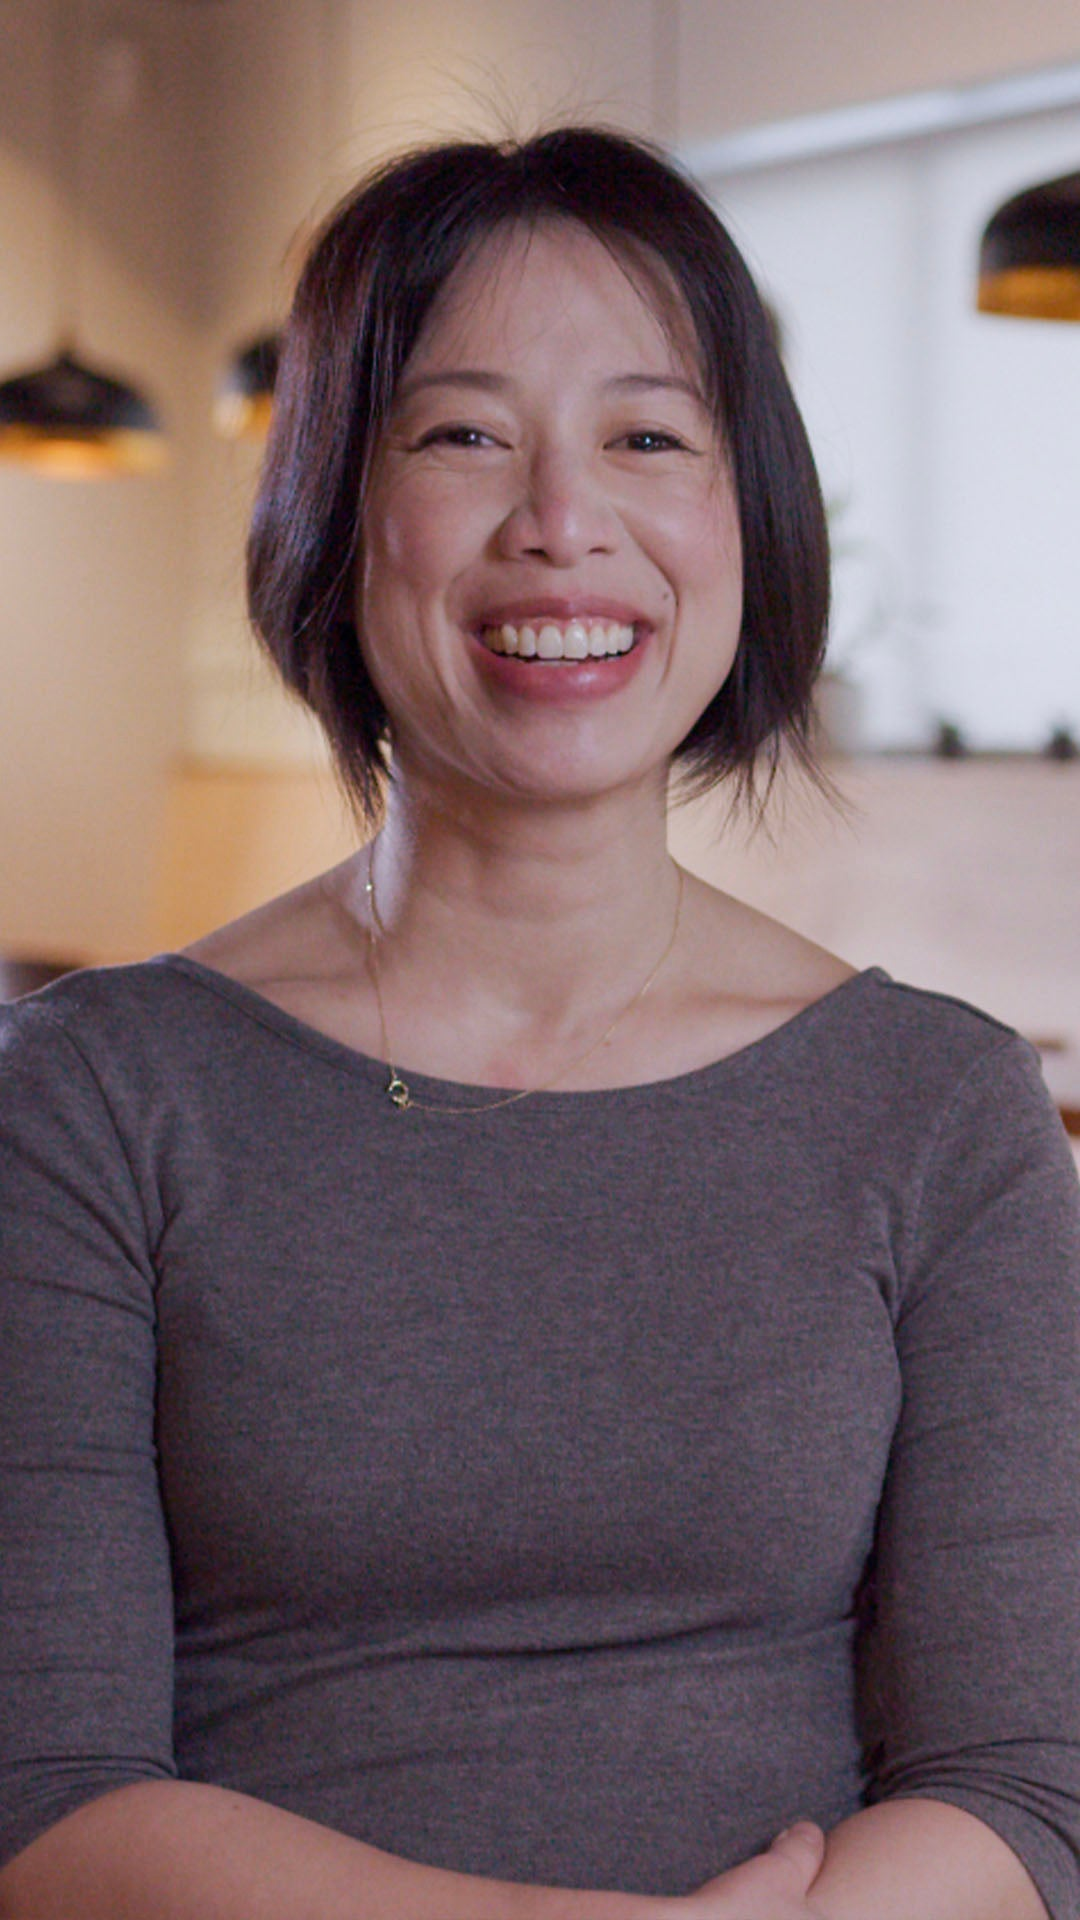 An image of Christine Ha. She is located in her restaurant, Xin Chao. She is smiling happily. Click play to watch video.